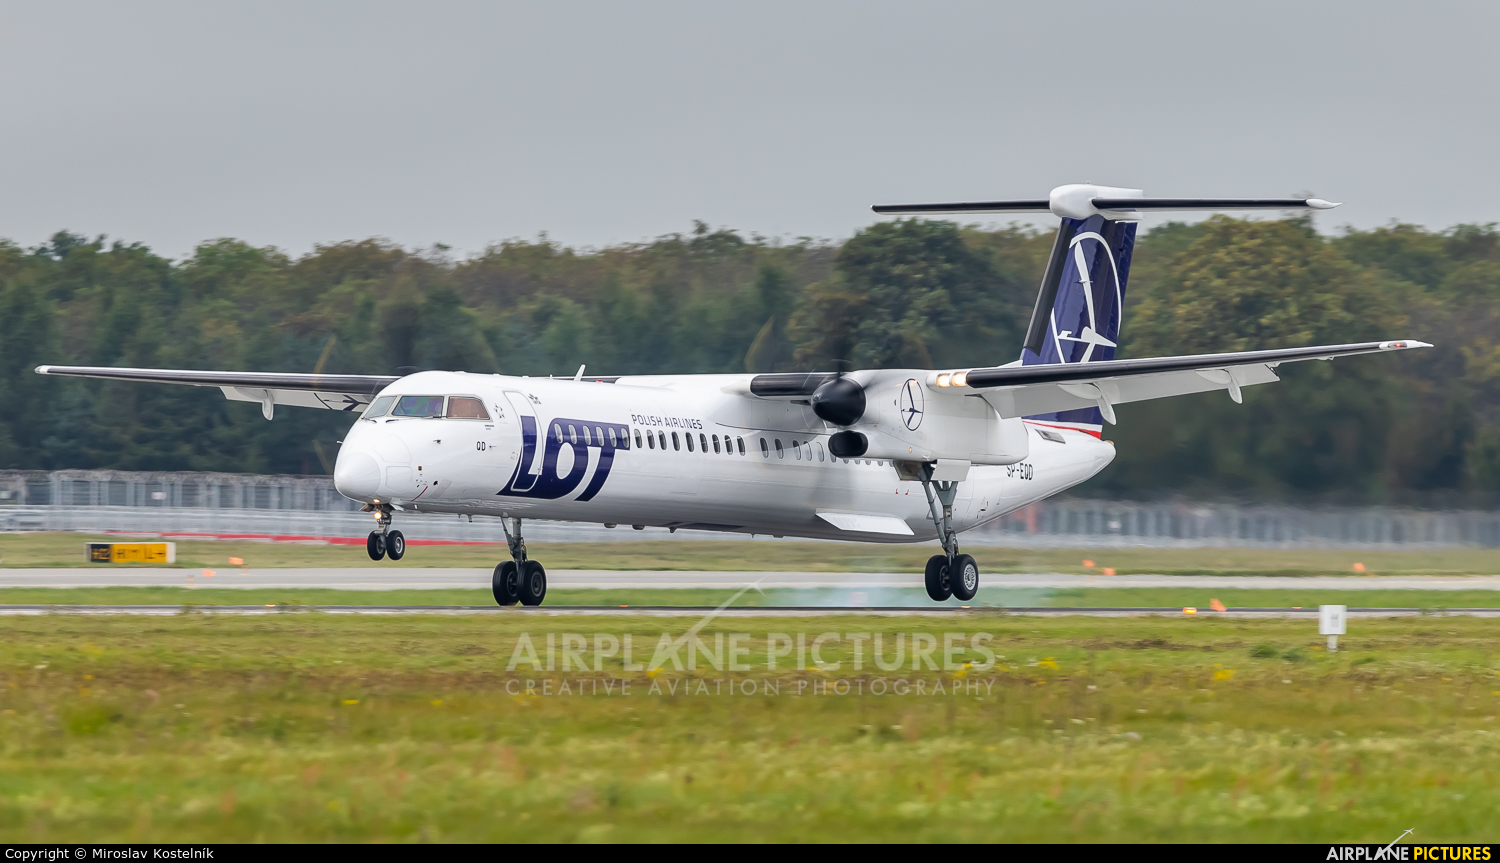 LOT - Polish Airlines SP-EQD aircraft at Katowice - Pyrzowice